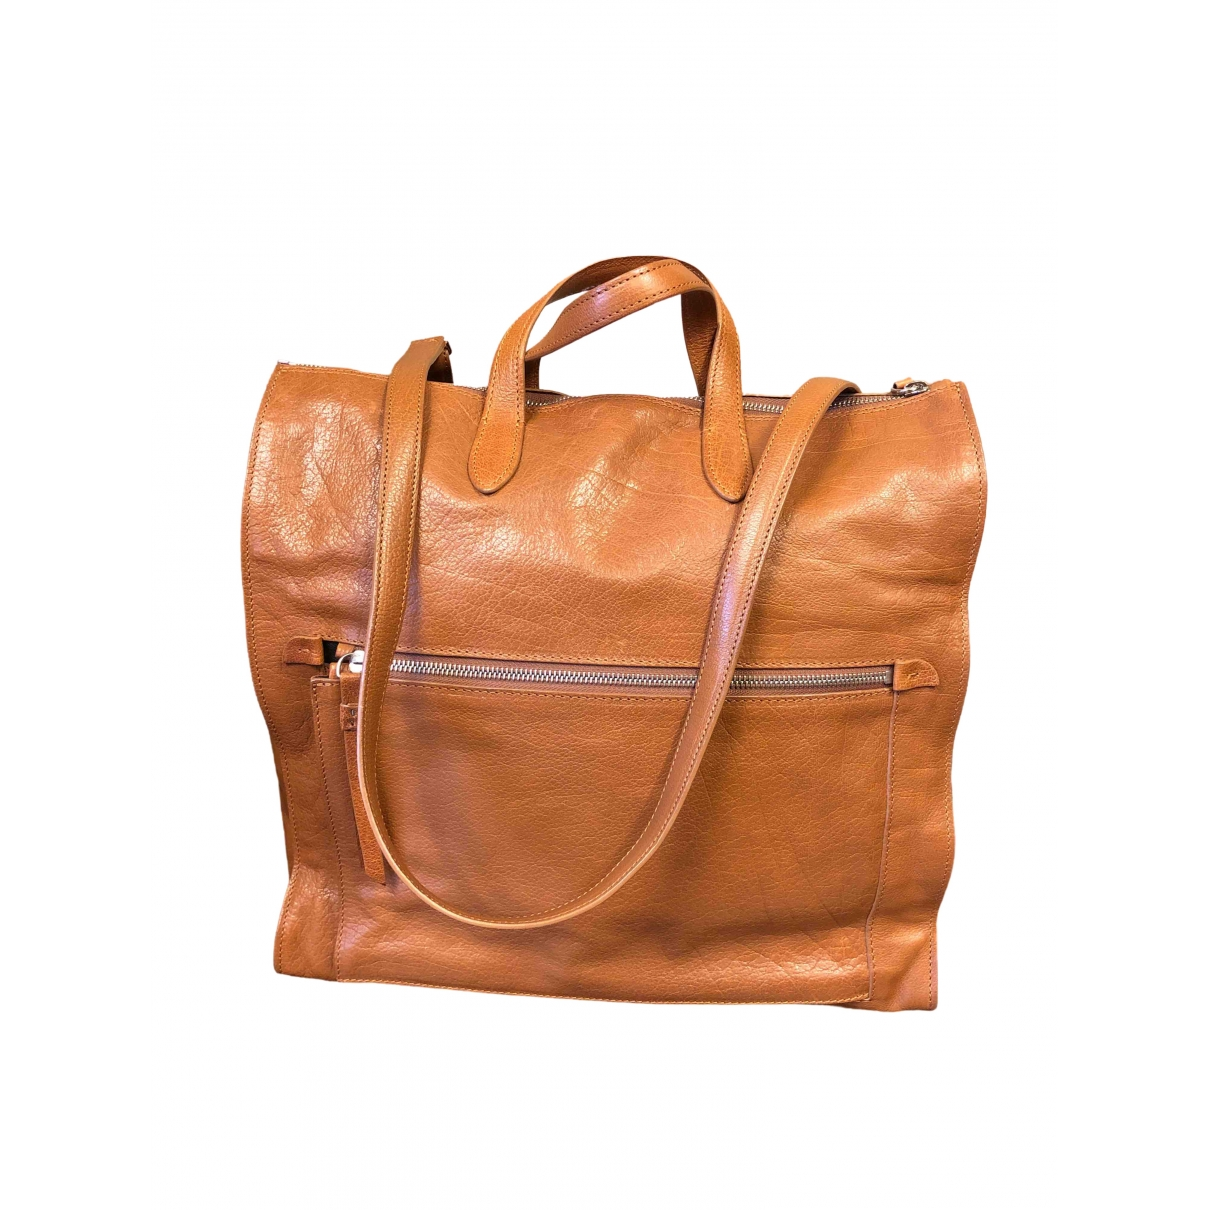 Maison Martin Margiela \N Brown Leather handbag for Women \N